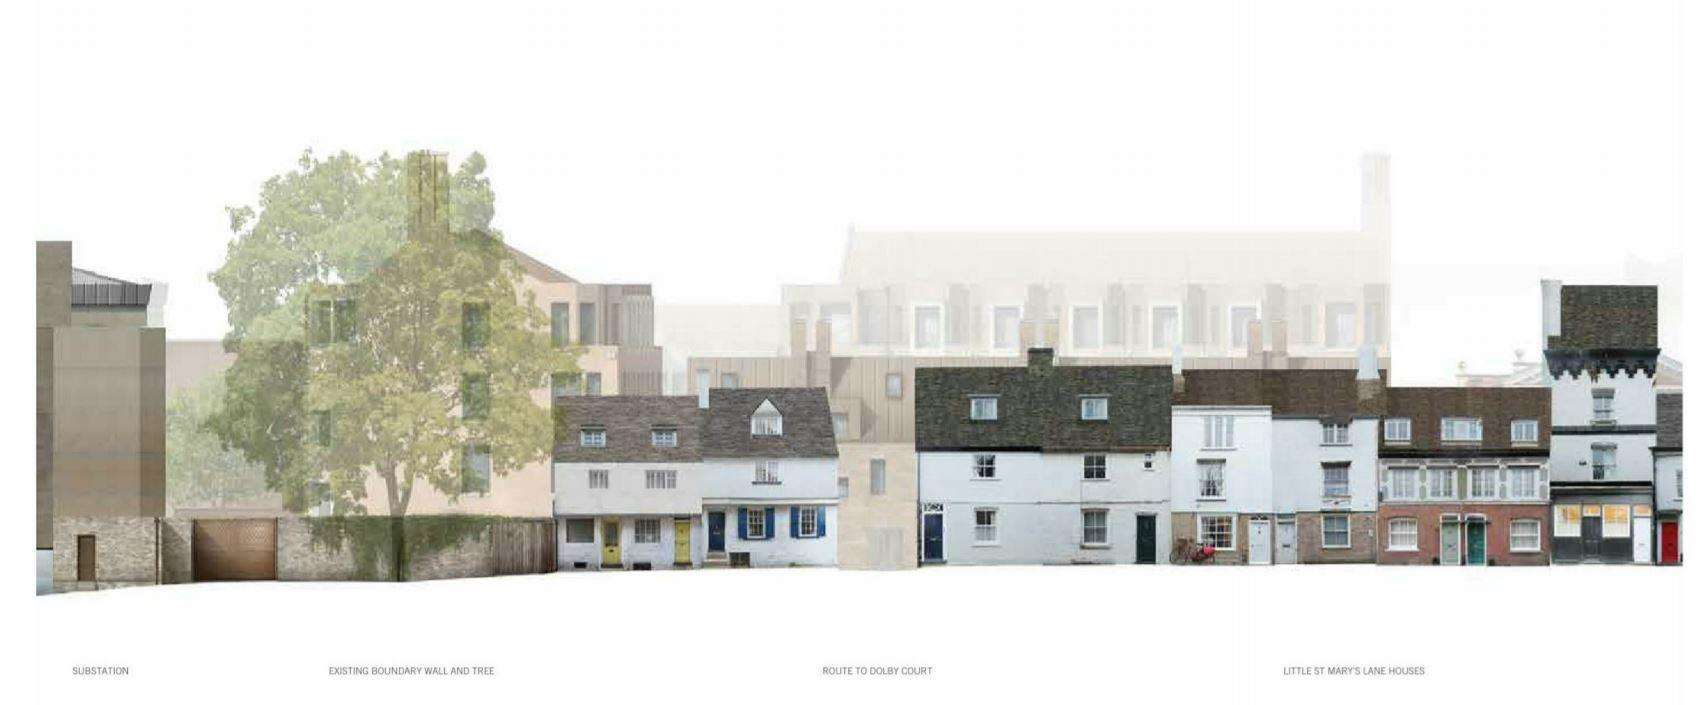 Little St Mary's Lane -- part of the Pembroke College proposed development. Images: Haworth Tompkins (6926410)